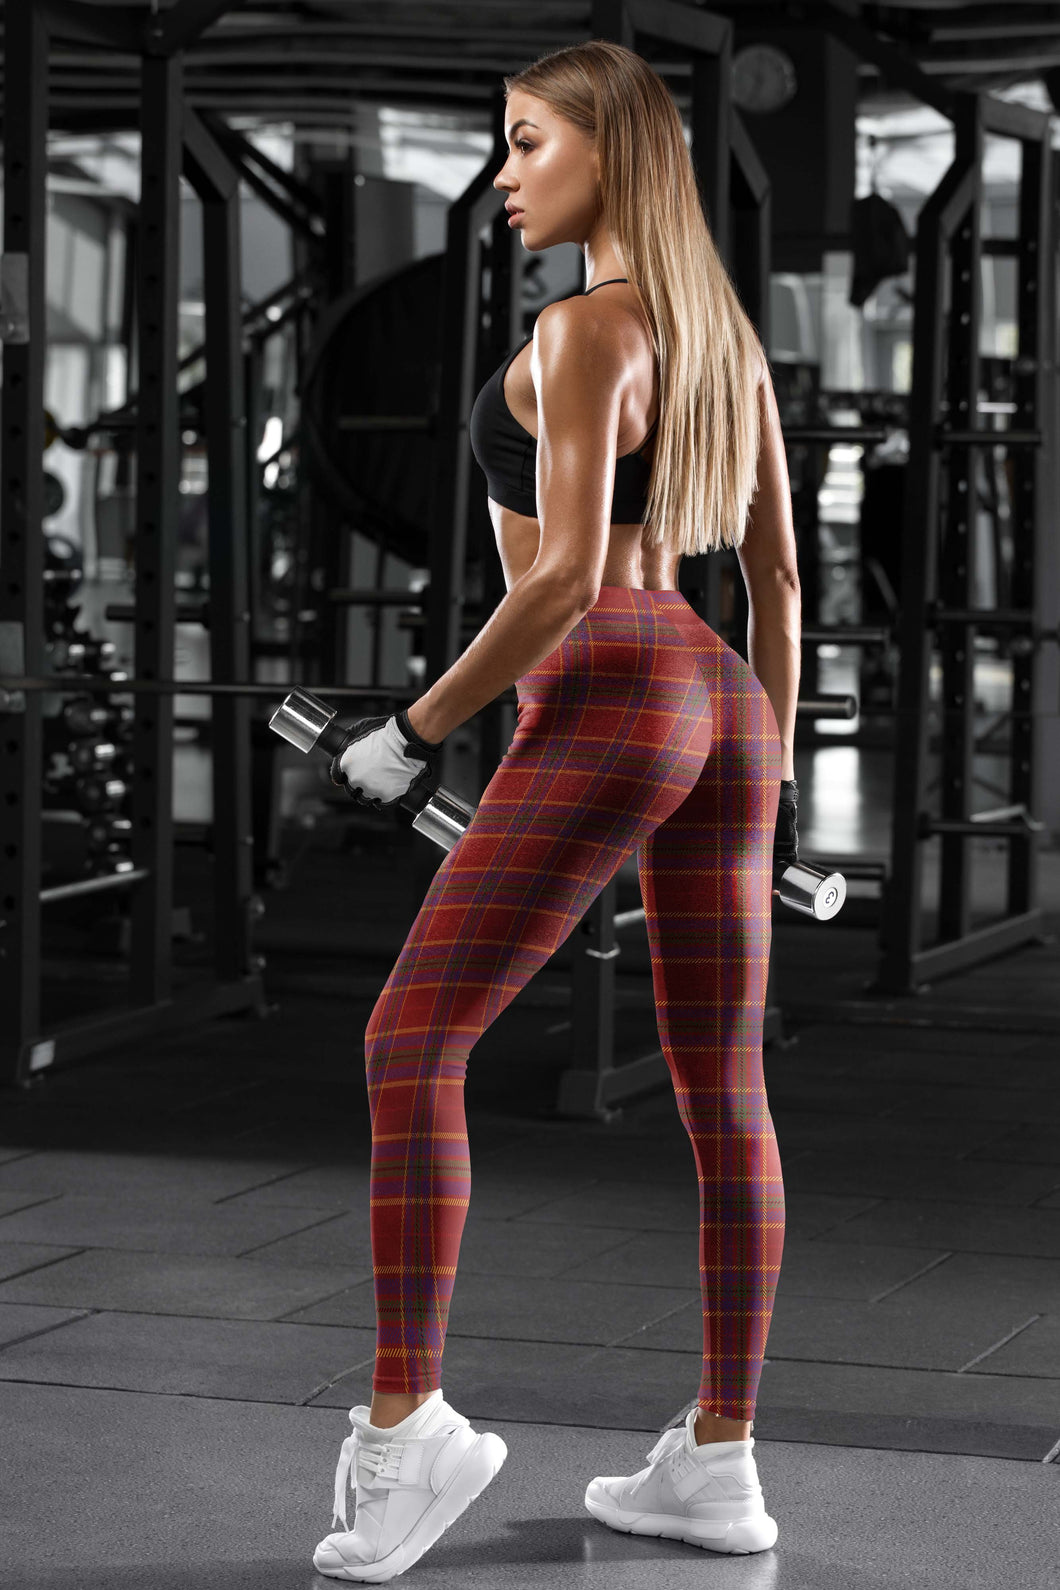 RED TARTAN LEGGINGS - US FITGIRLS